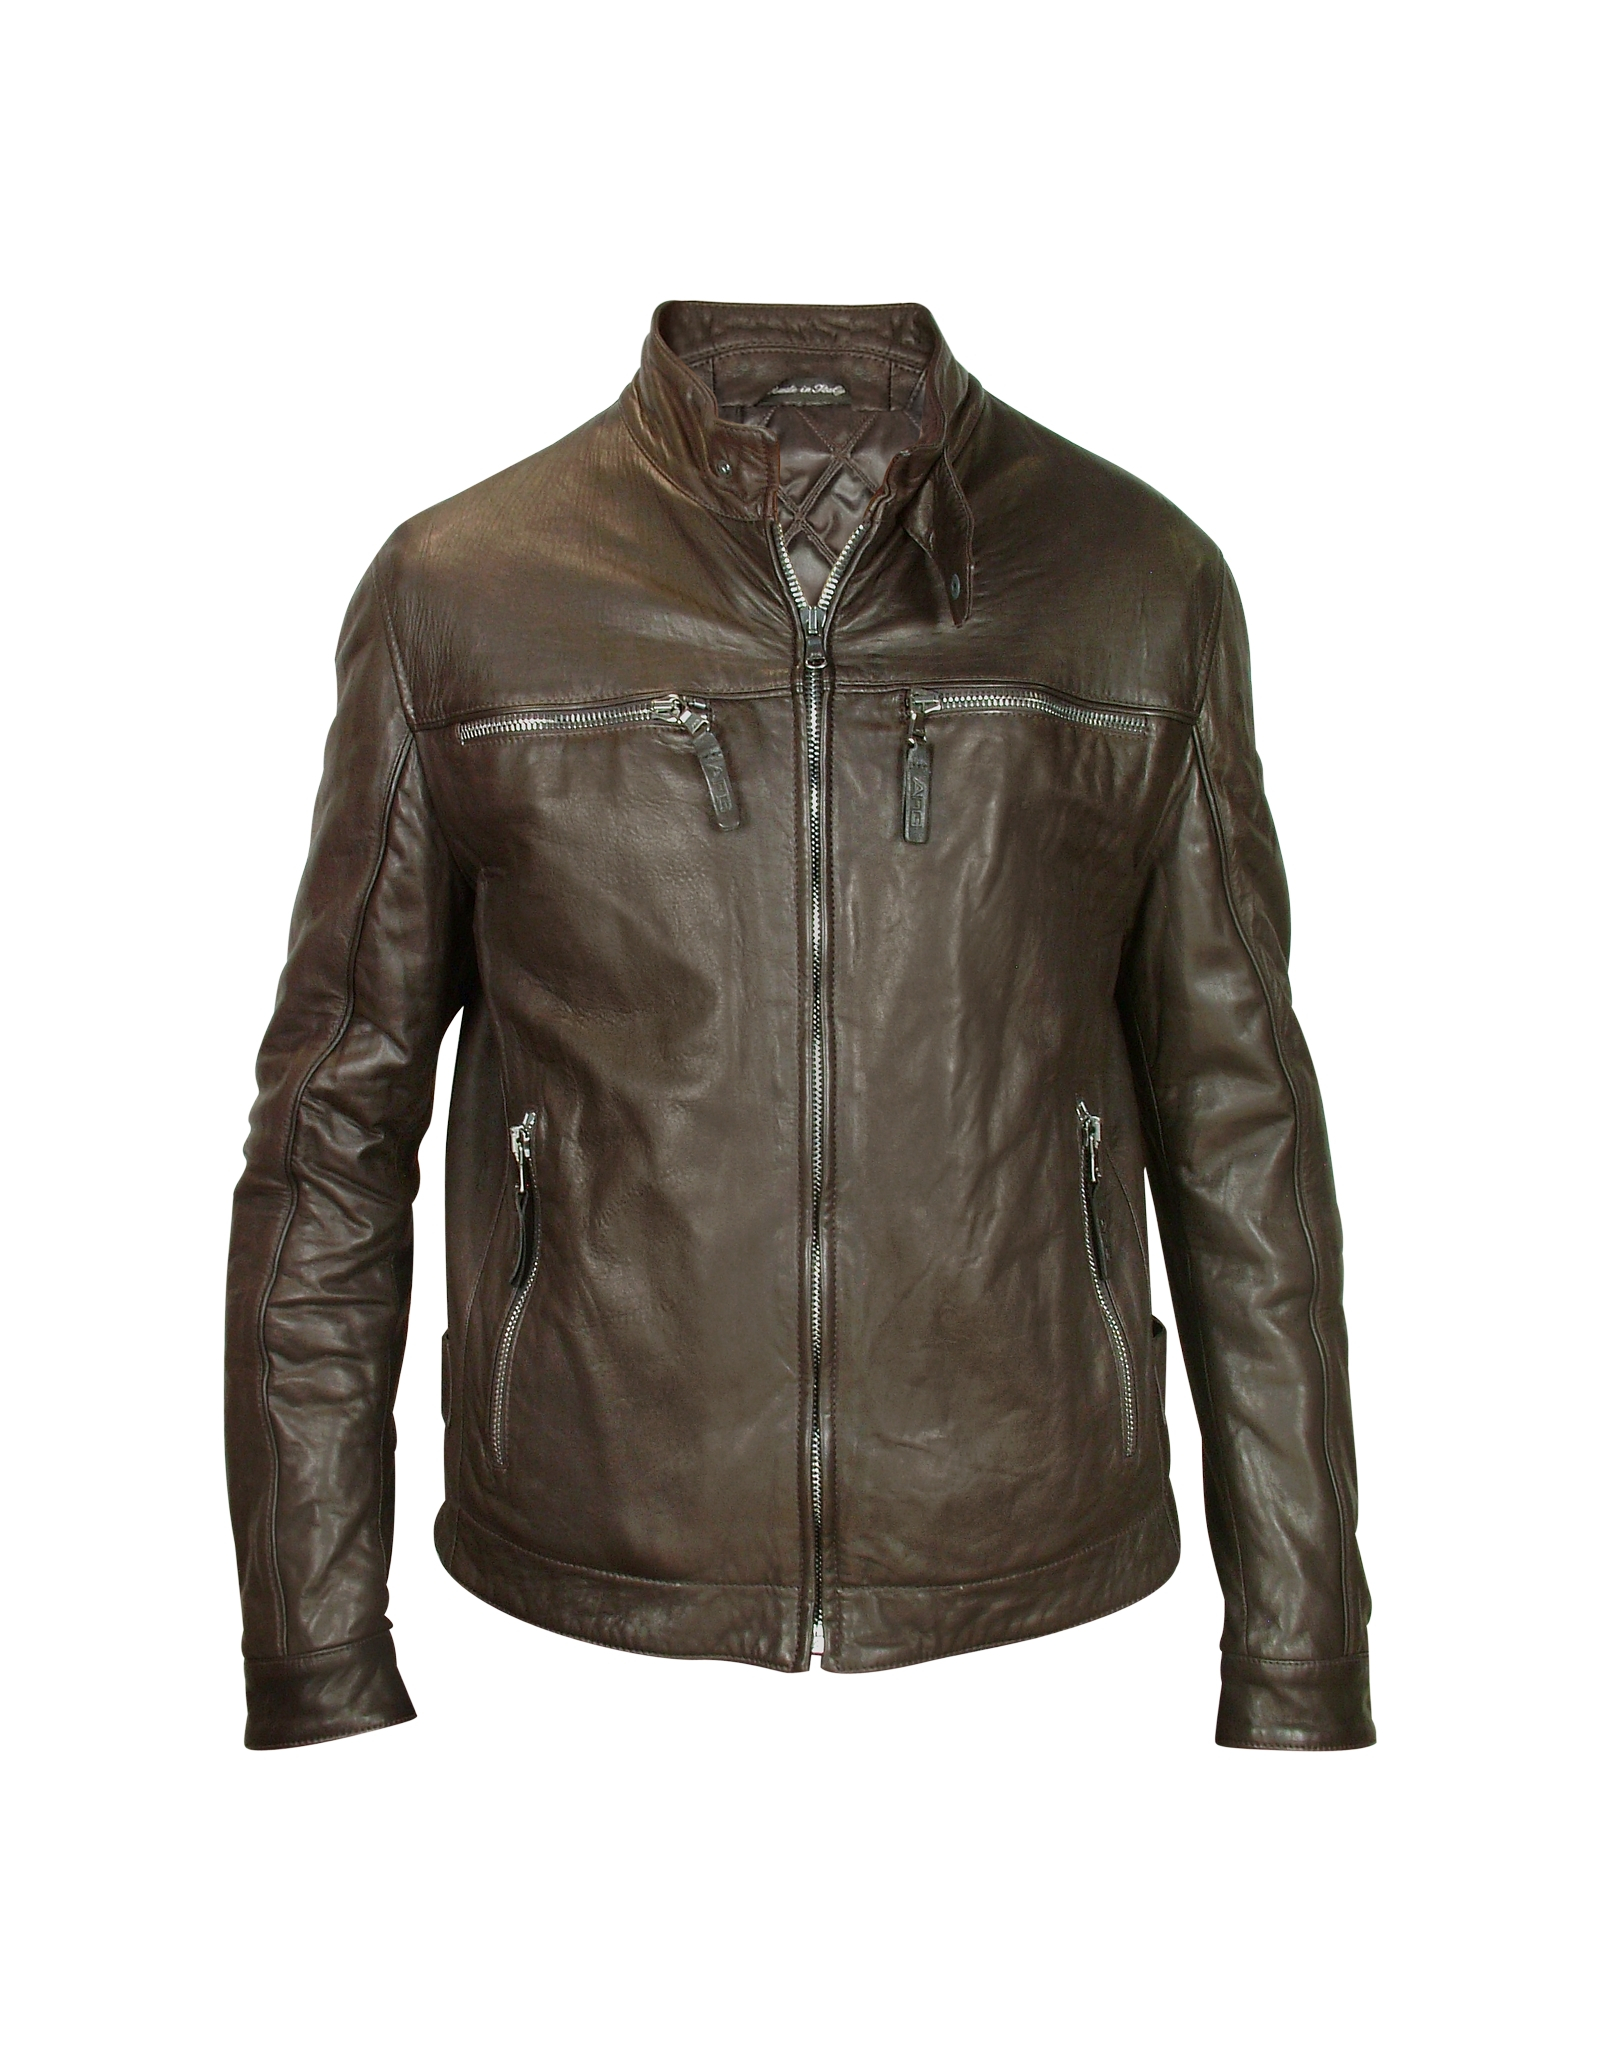 How to Care for a Leather Motorcycle Jacket